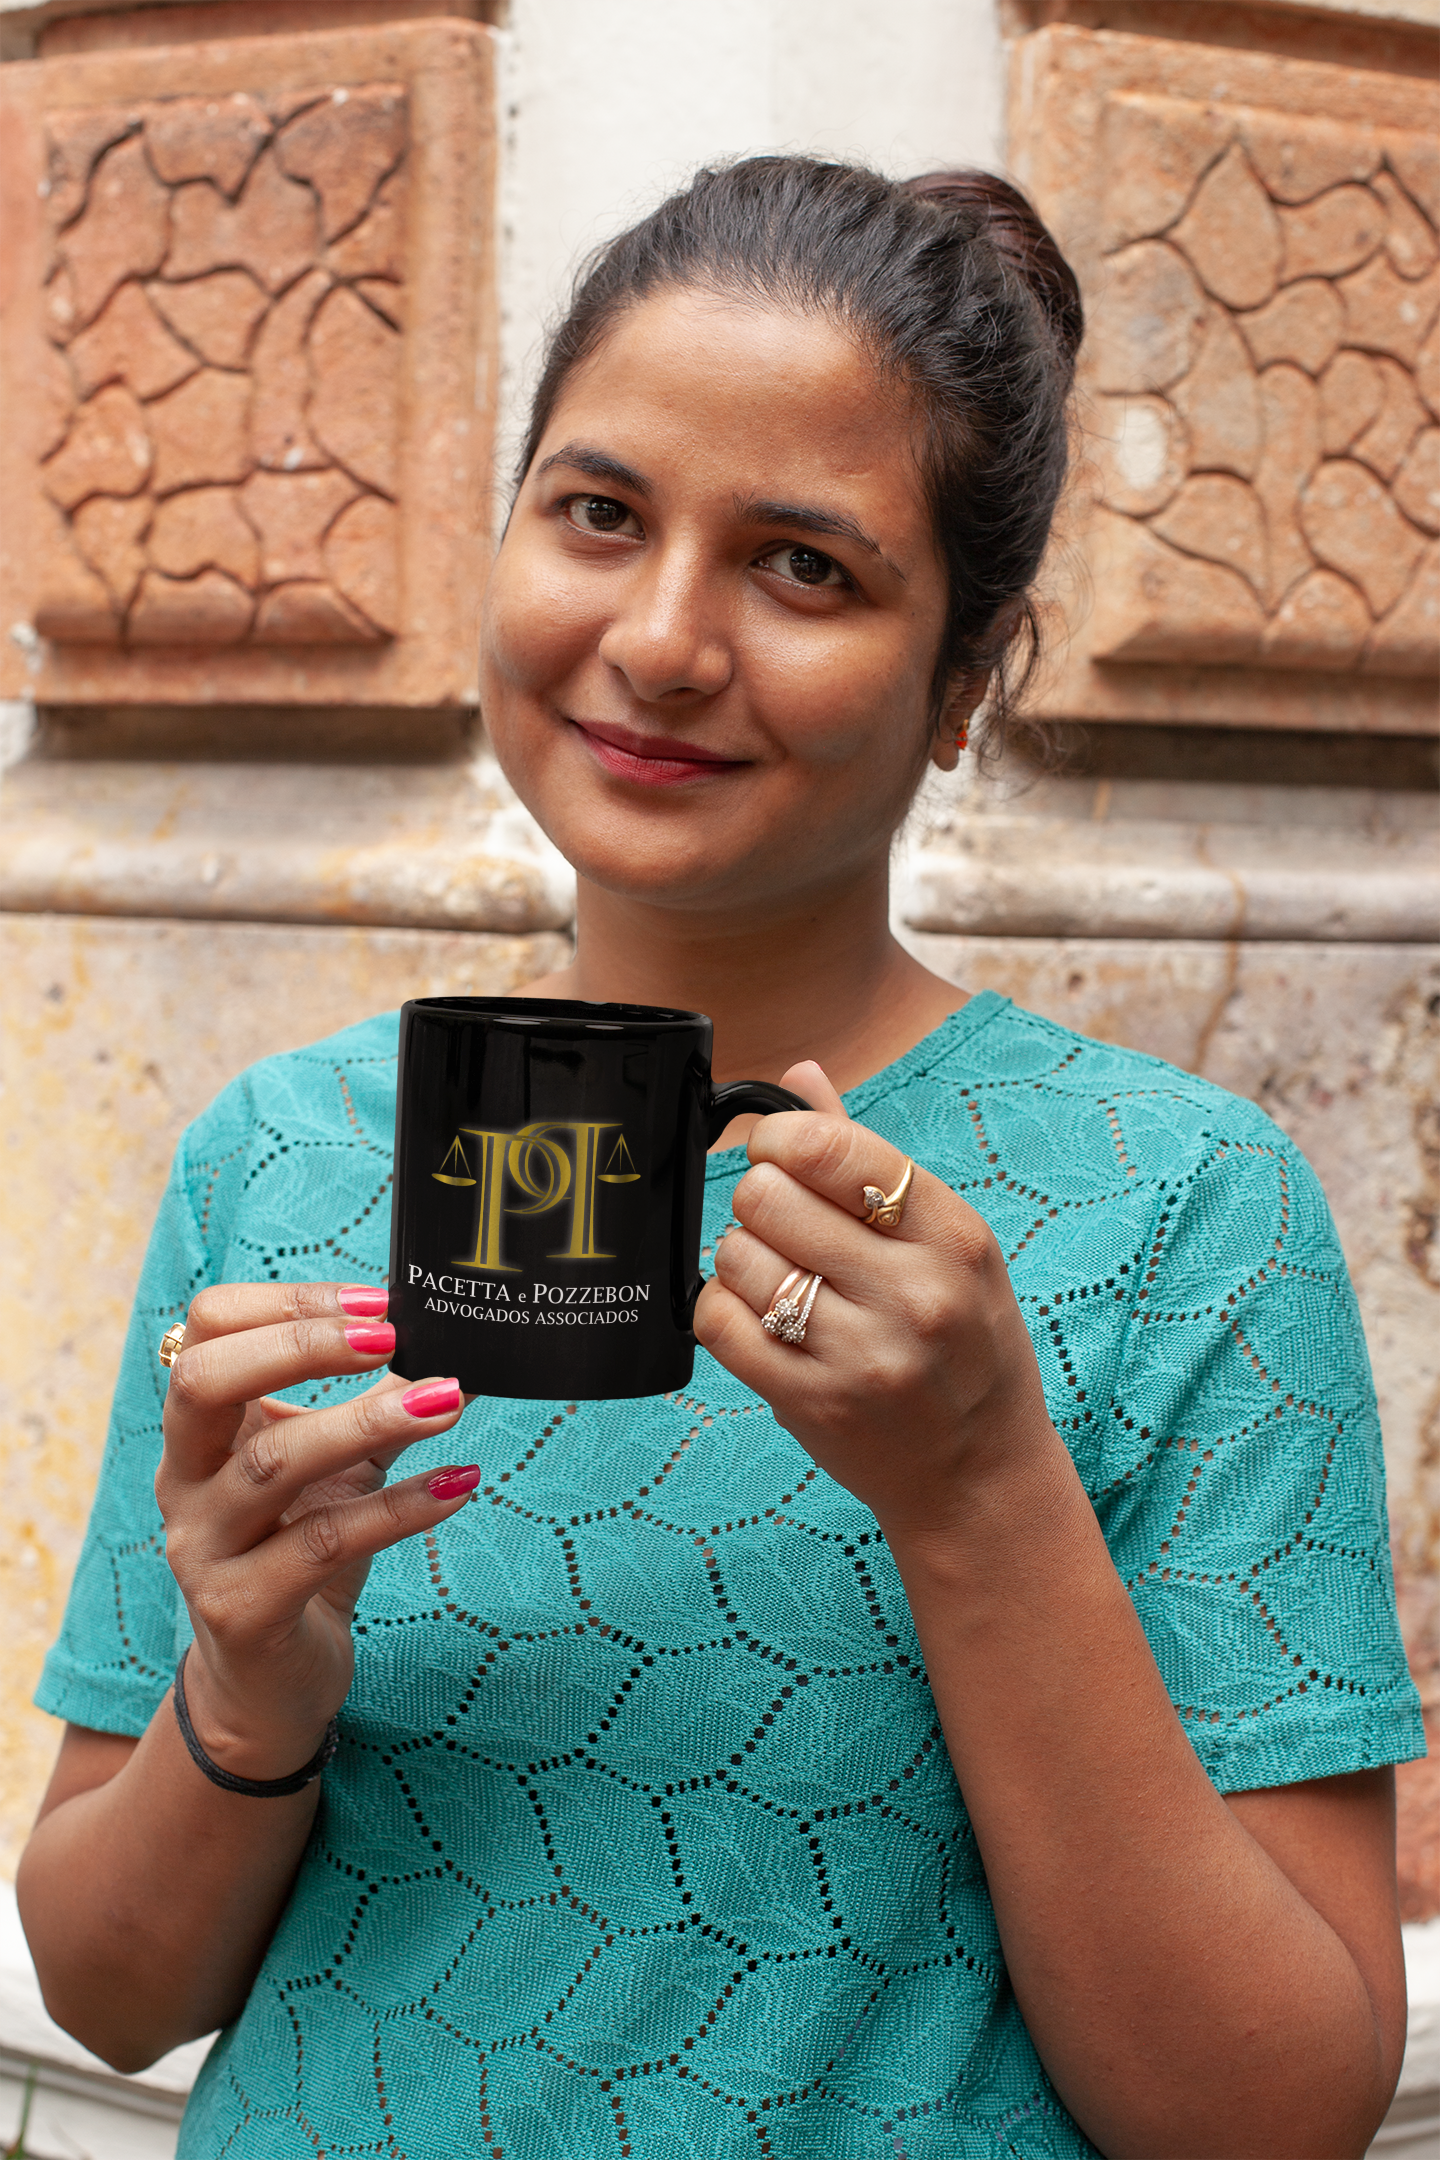 mockup-of-a-woman-having-a-cup-of-coffee-in-her-11-oz-mug-outside-28942.png